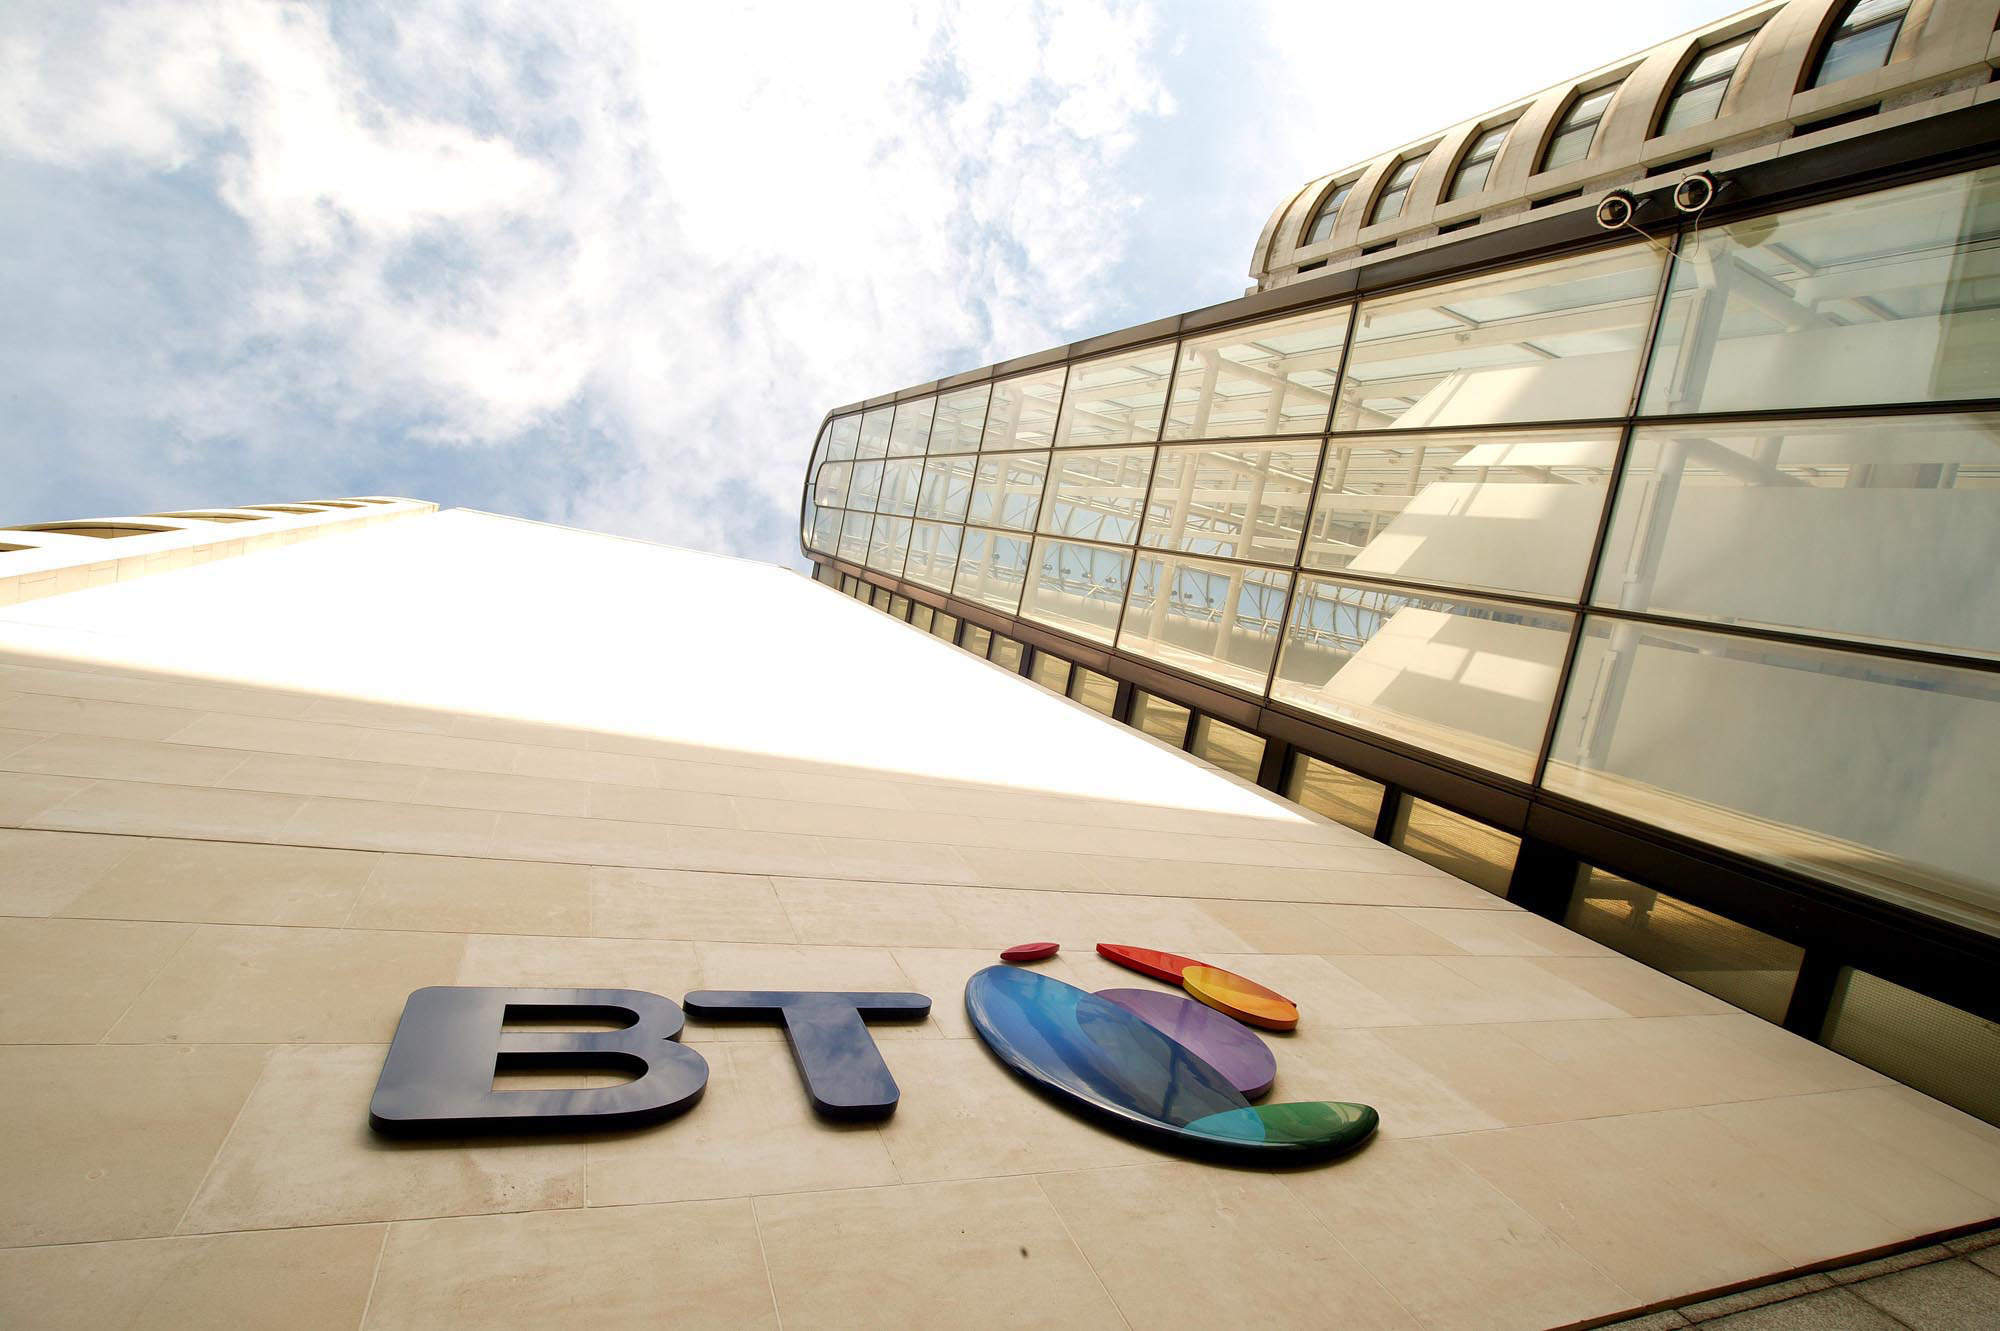 BT Centre in Newgate Street, London